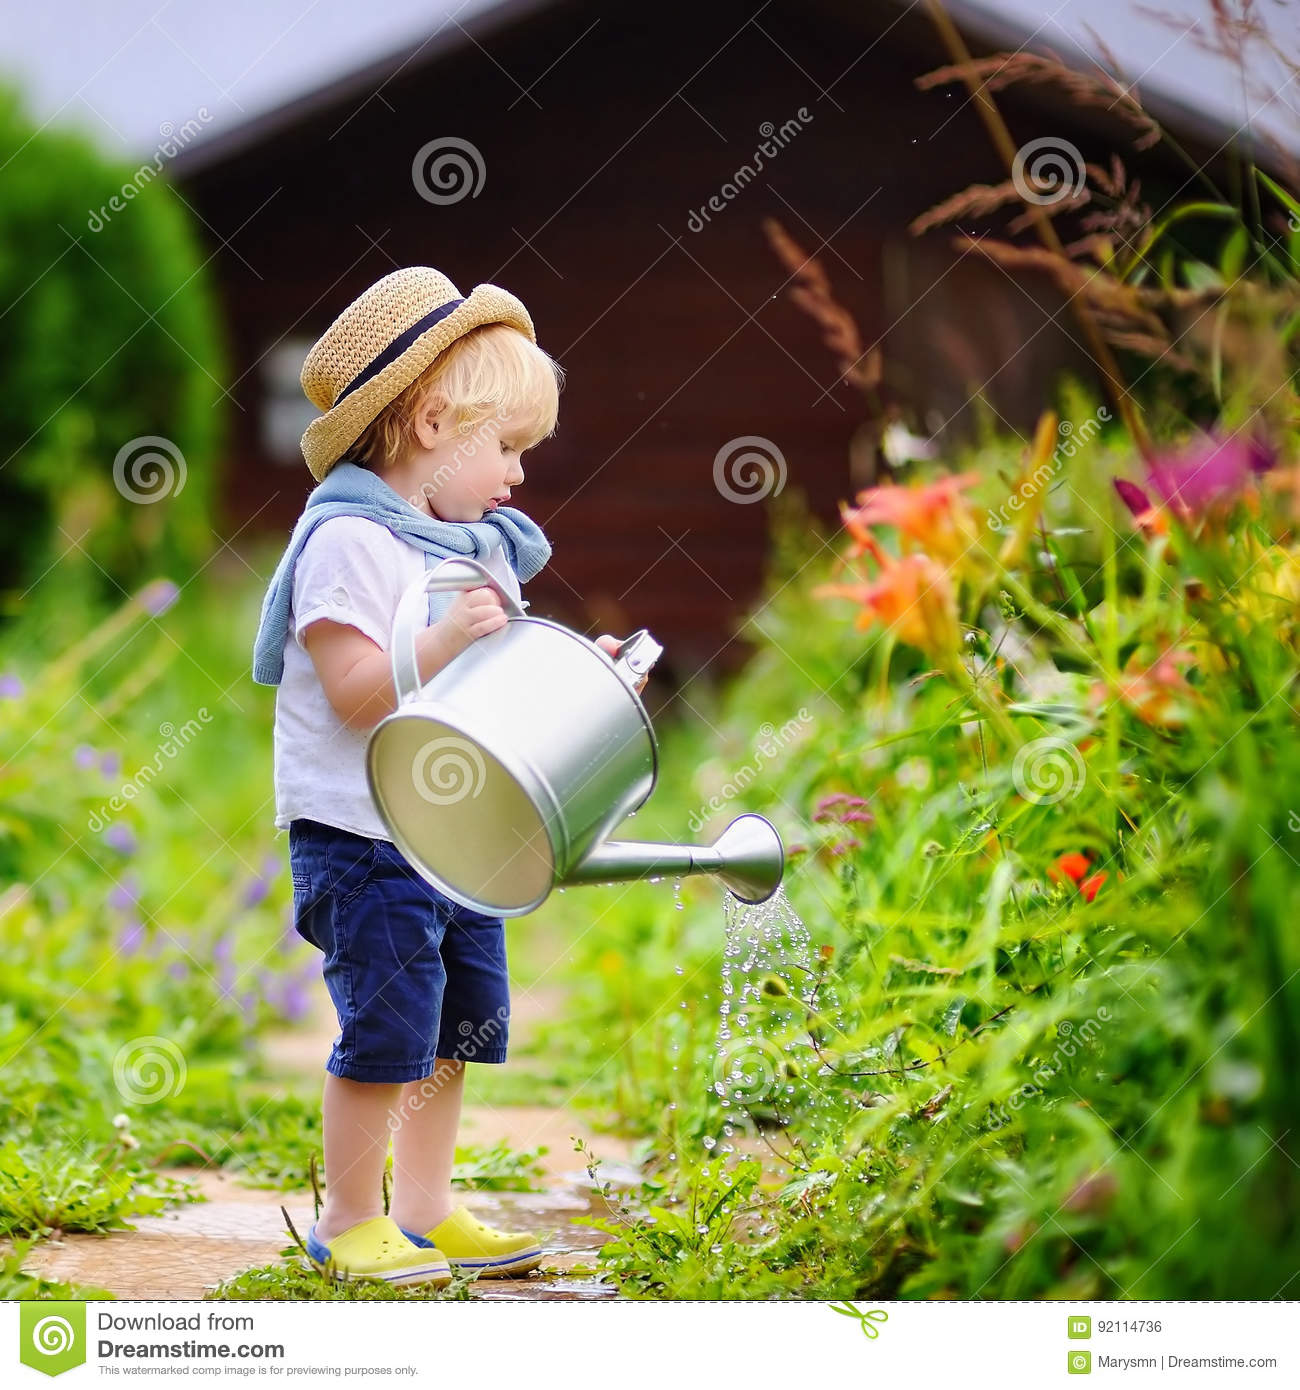 Cute Toddler Boy In Straw Hat Watering Plants Stock Photo - Image of ... 635eab6c6a20